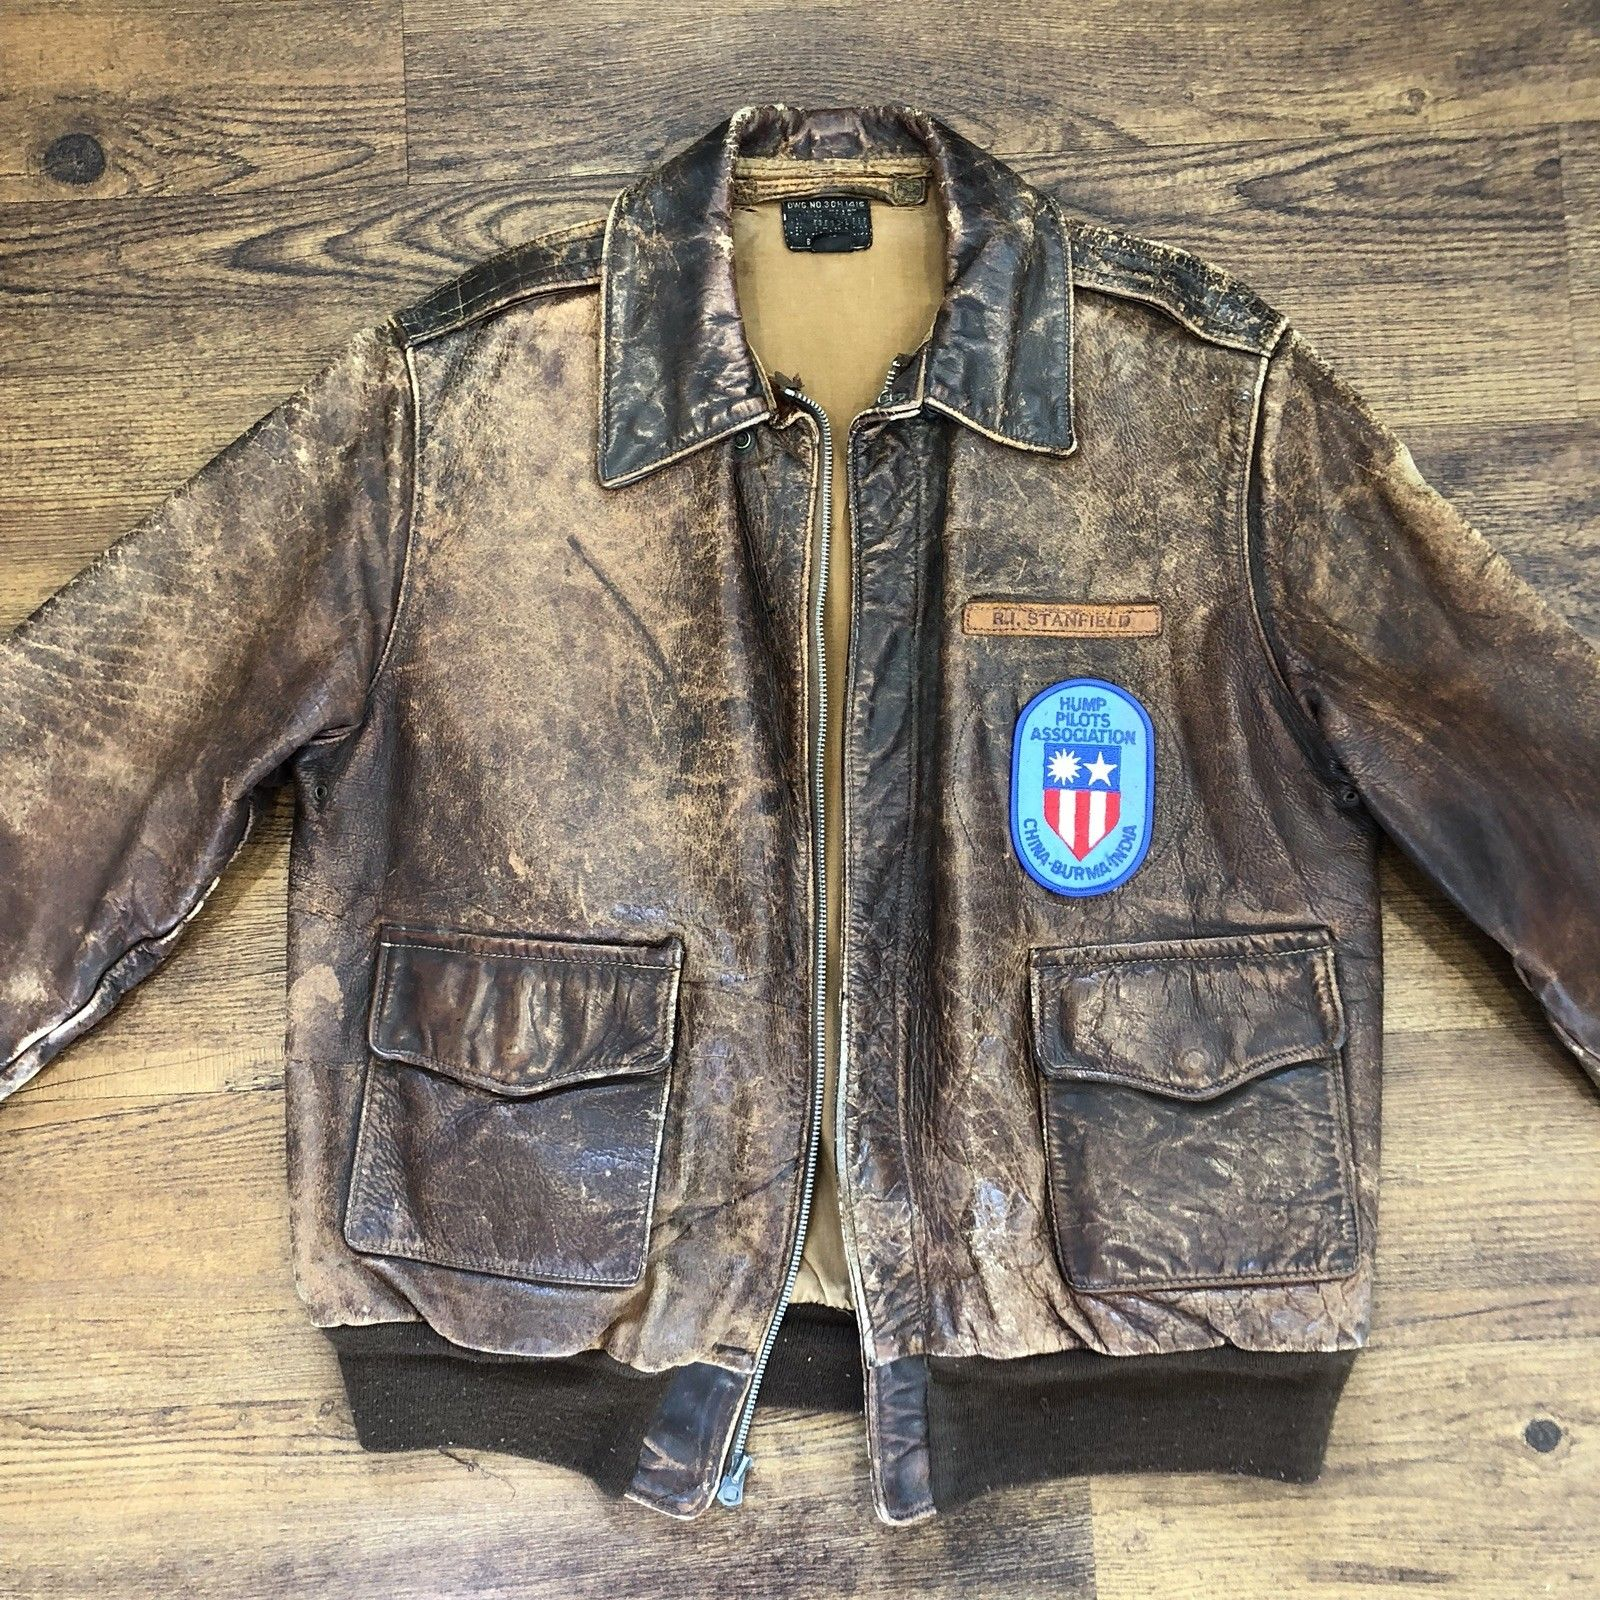 More Great Looking Chinese Military Leather Jacket Repros